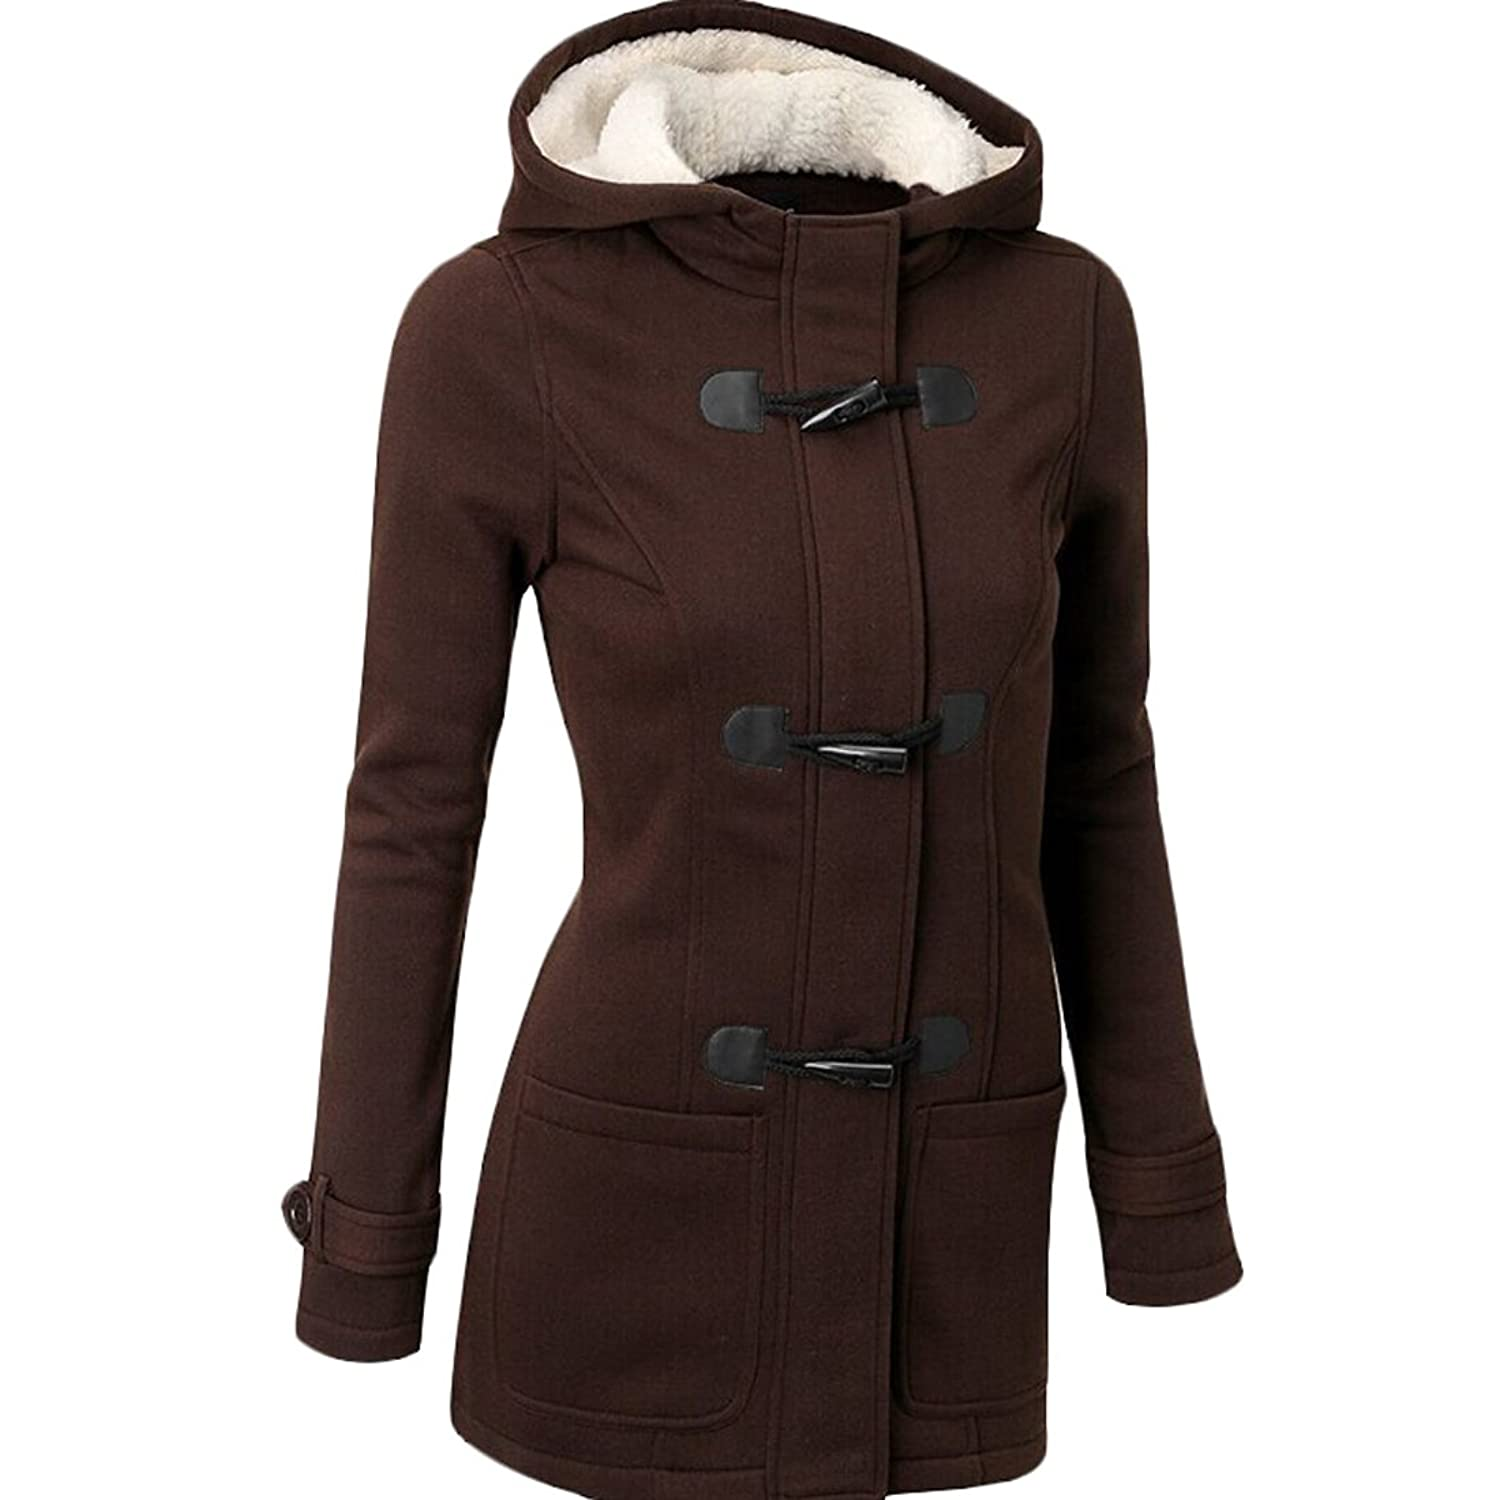 WANSHIYISHE Womens Classic Single-breasted Hooded Slim Fit Pea Coat